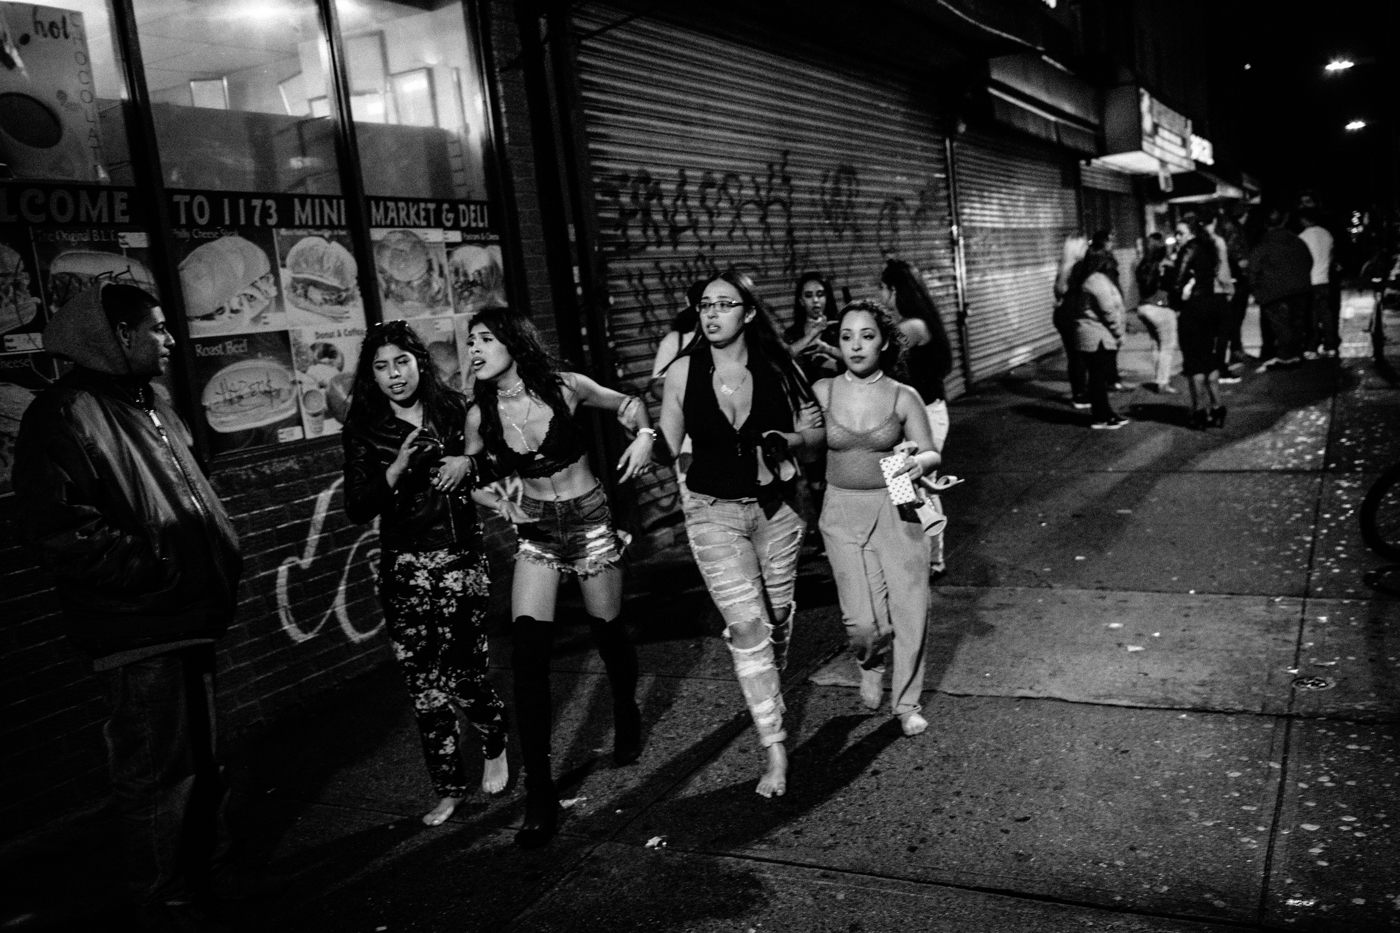 Women flee what many people thought was a shooting but ended up being a violent fight outside a bar along Broadway in the Bushwick neighborhood of Brooklyn, NY.